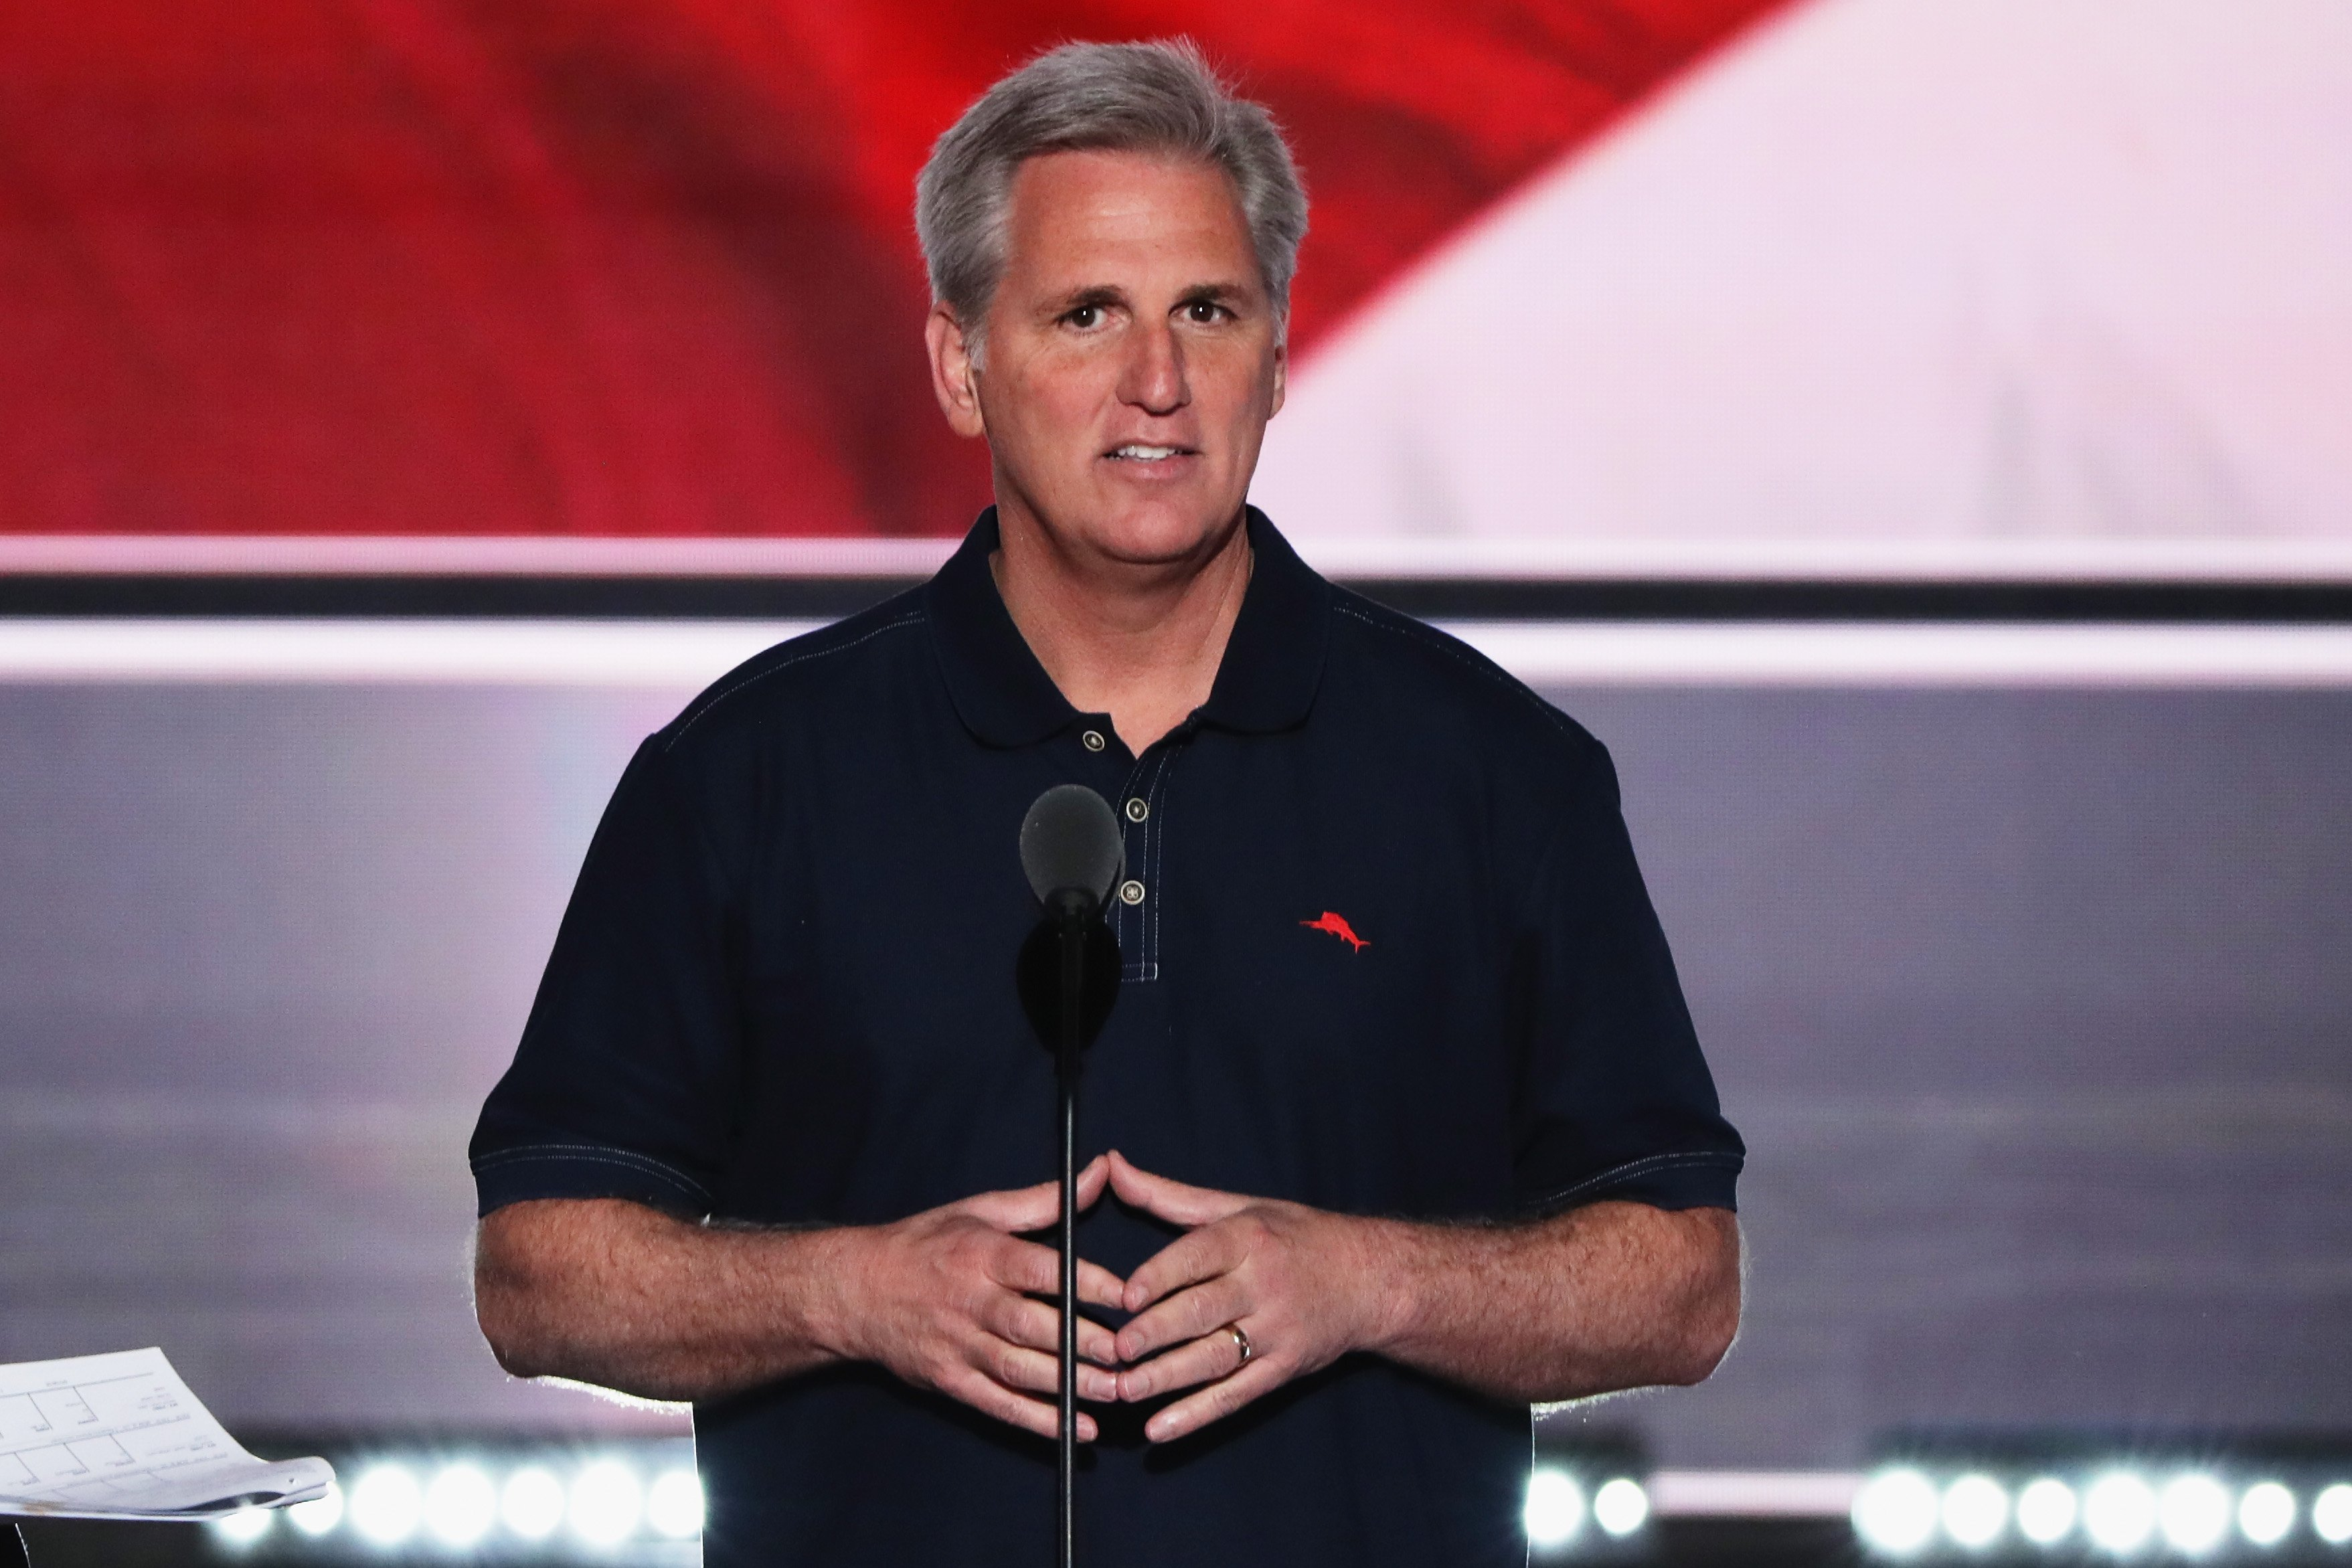 House Majority Leader Rep. Kevin McCarthy stands on stage prior to the start of the second day of the Republican National Convention on July 19, 2016 at the Quicken Loans Arena in Cleveland.